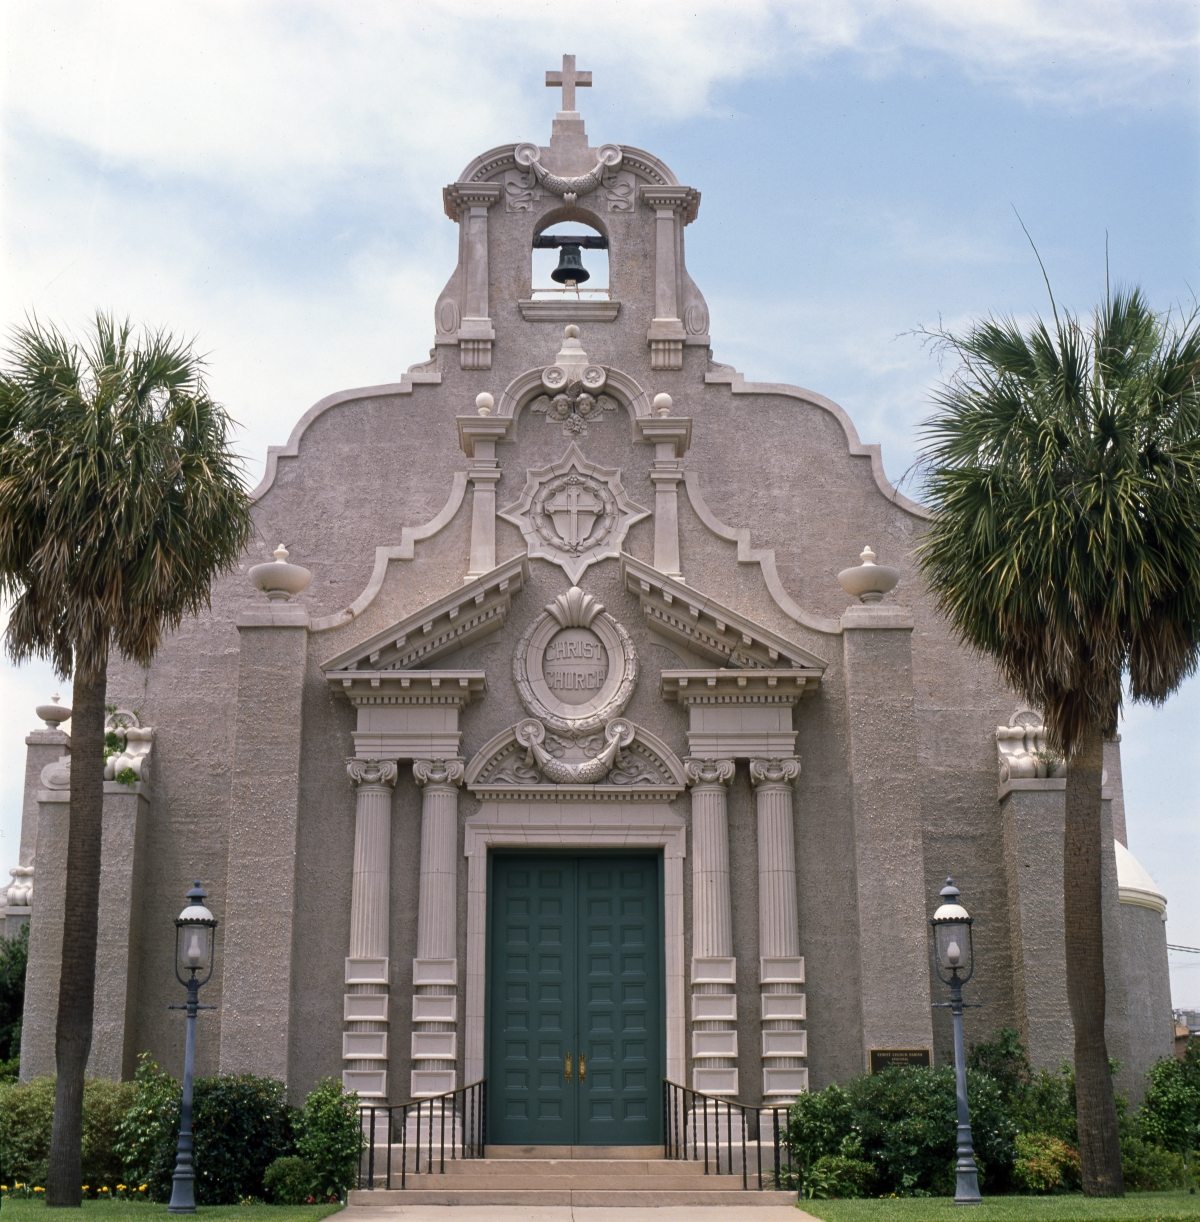 Episcopal Christ Church at 18 W. Wright St. in Pensacola.